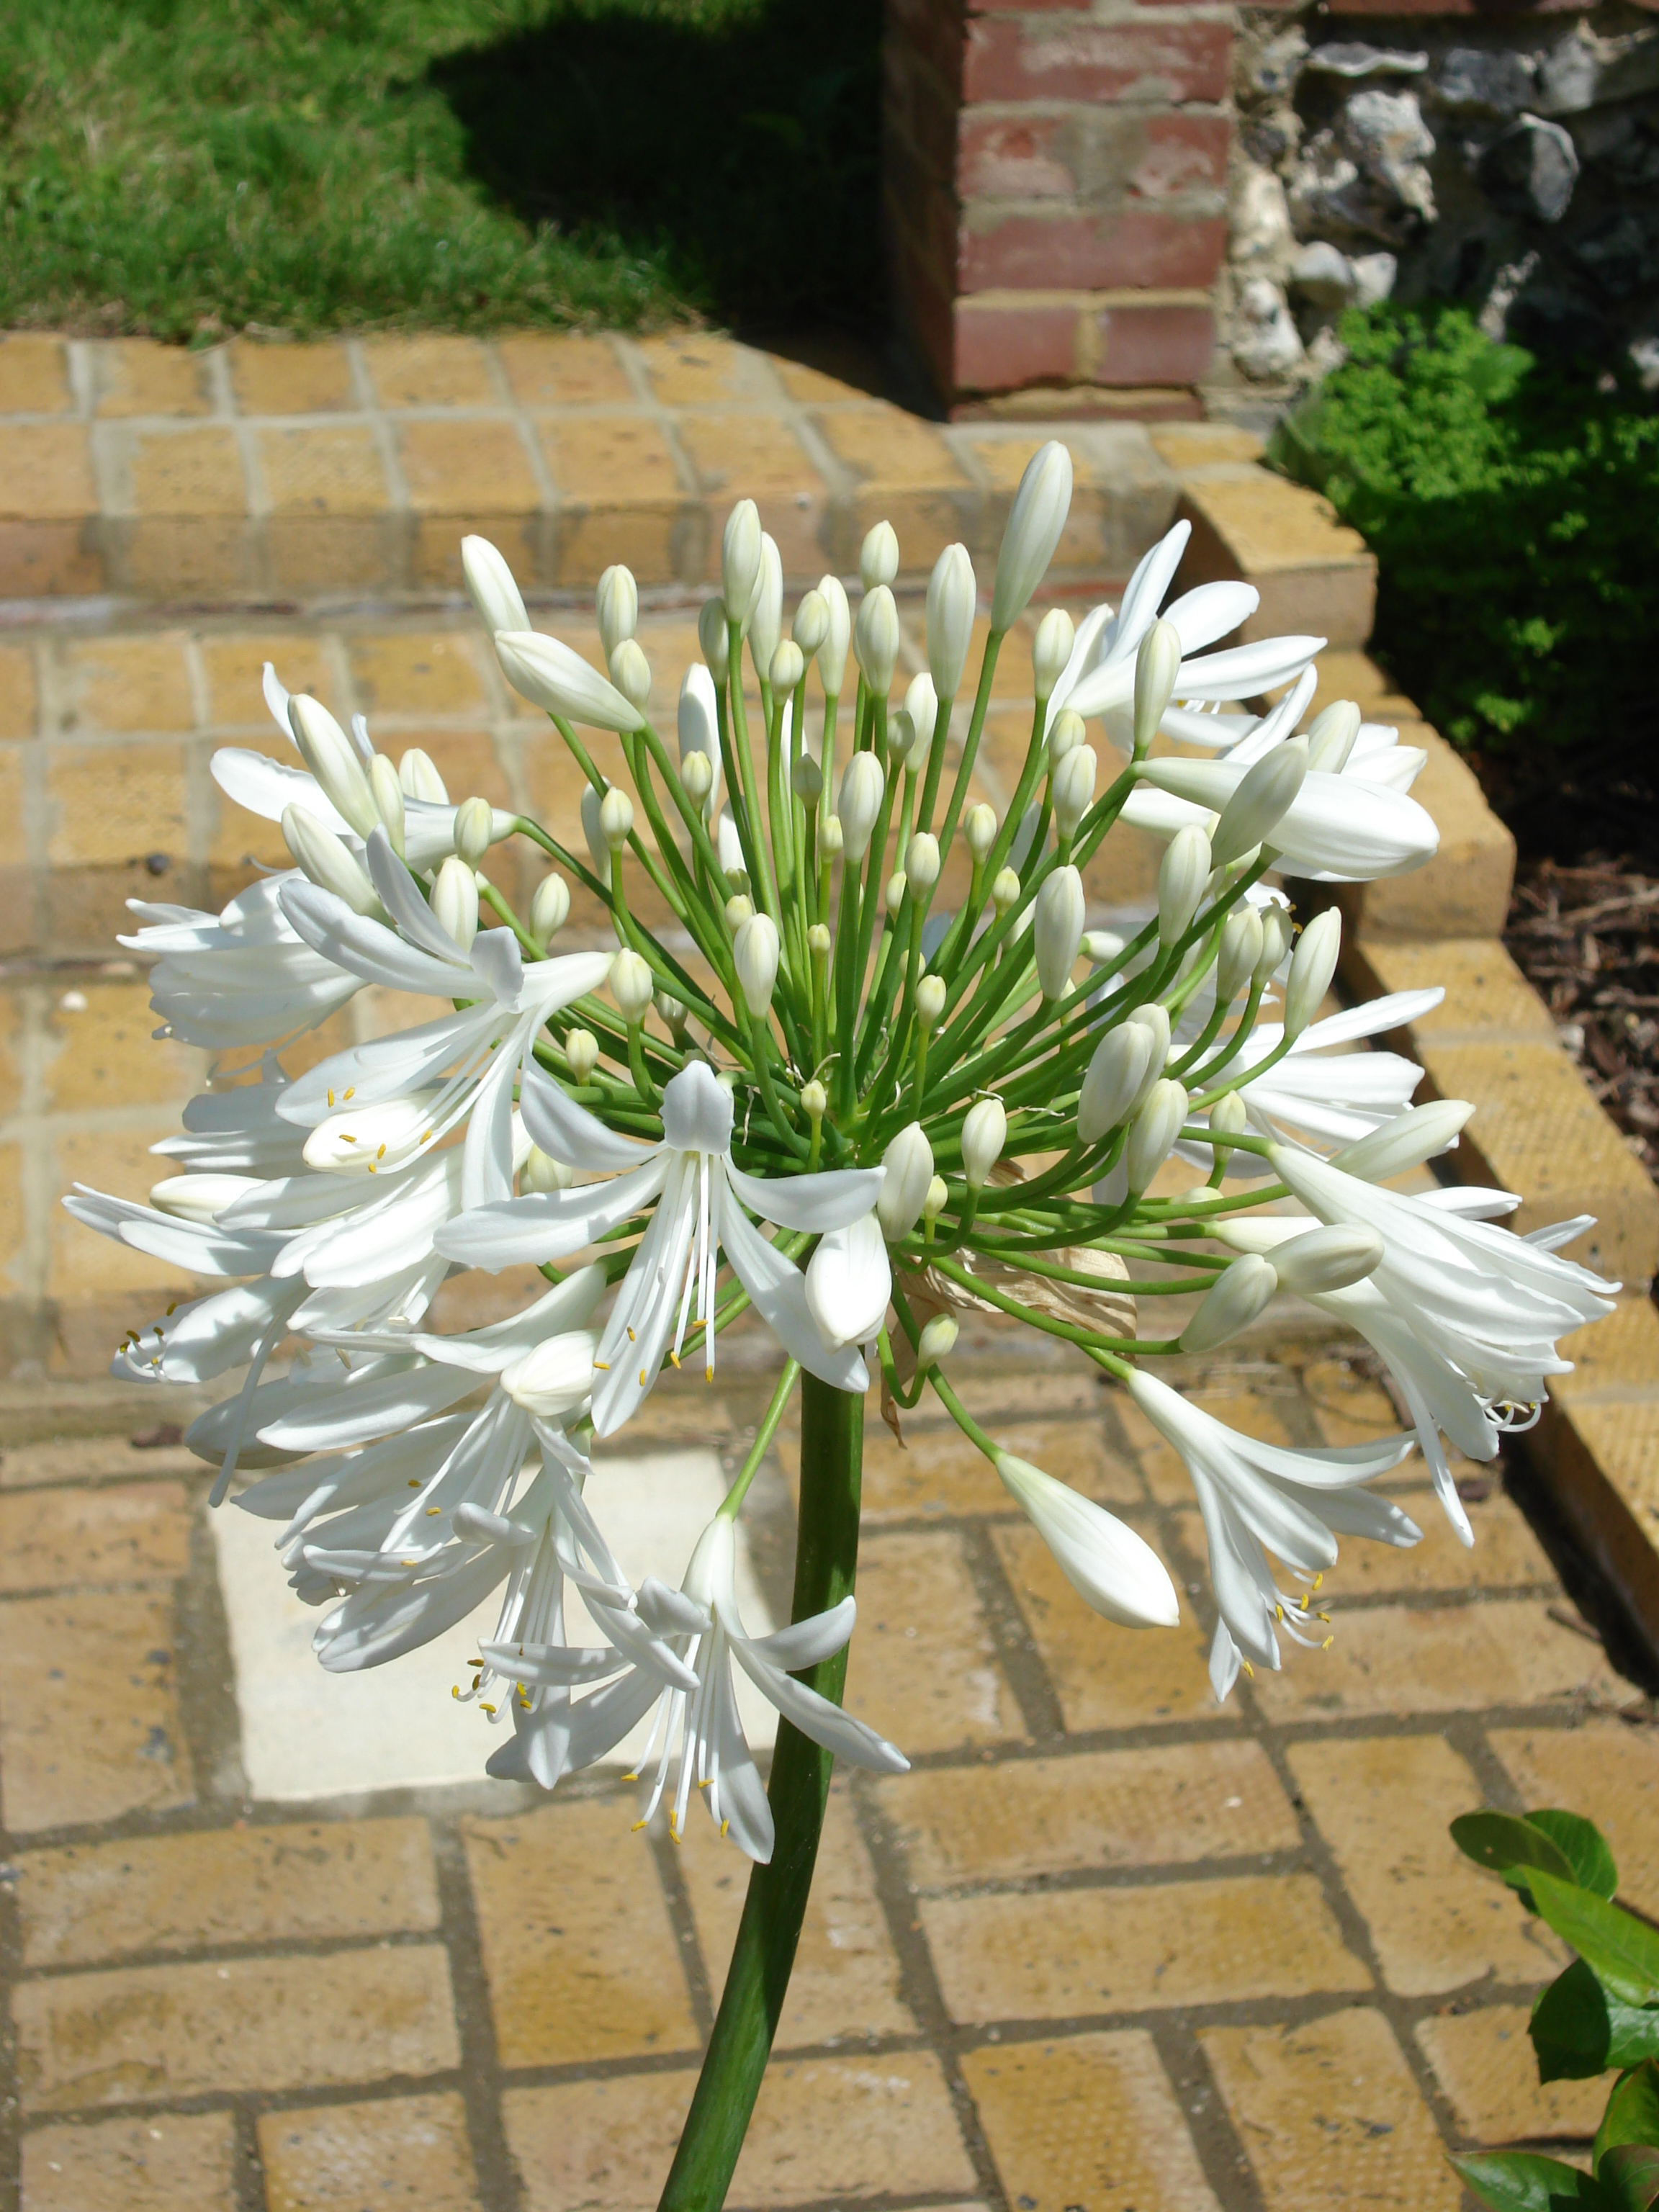 White agapanthus for summer colour, another of the show-stopper perennials